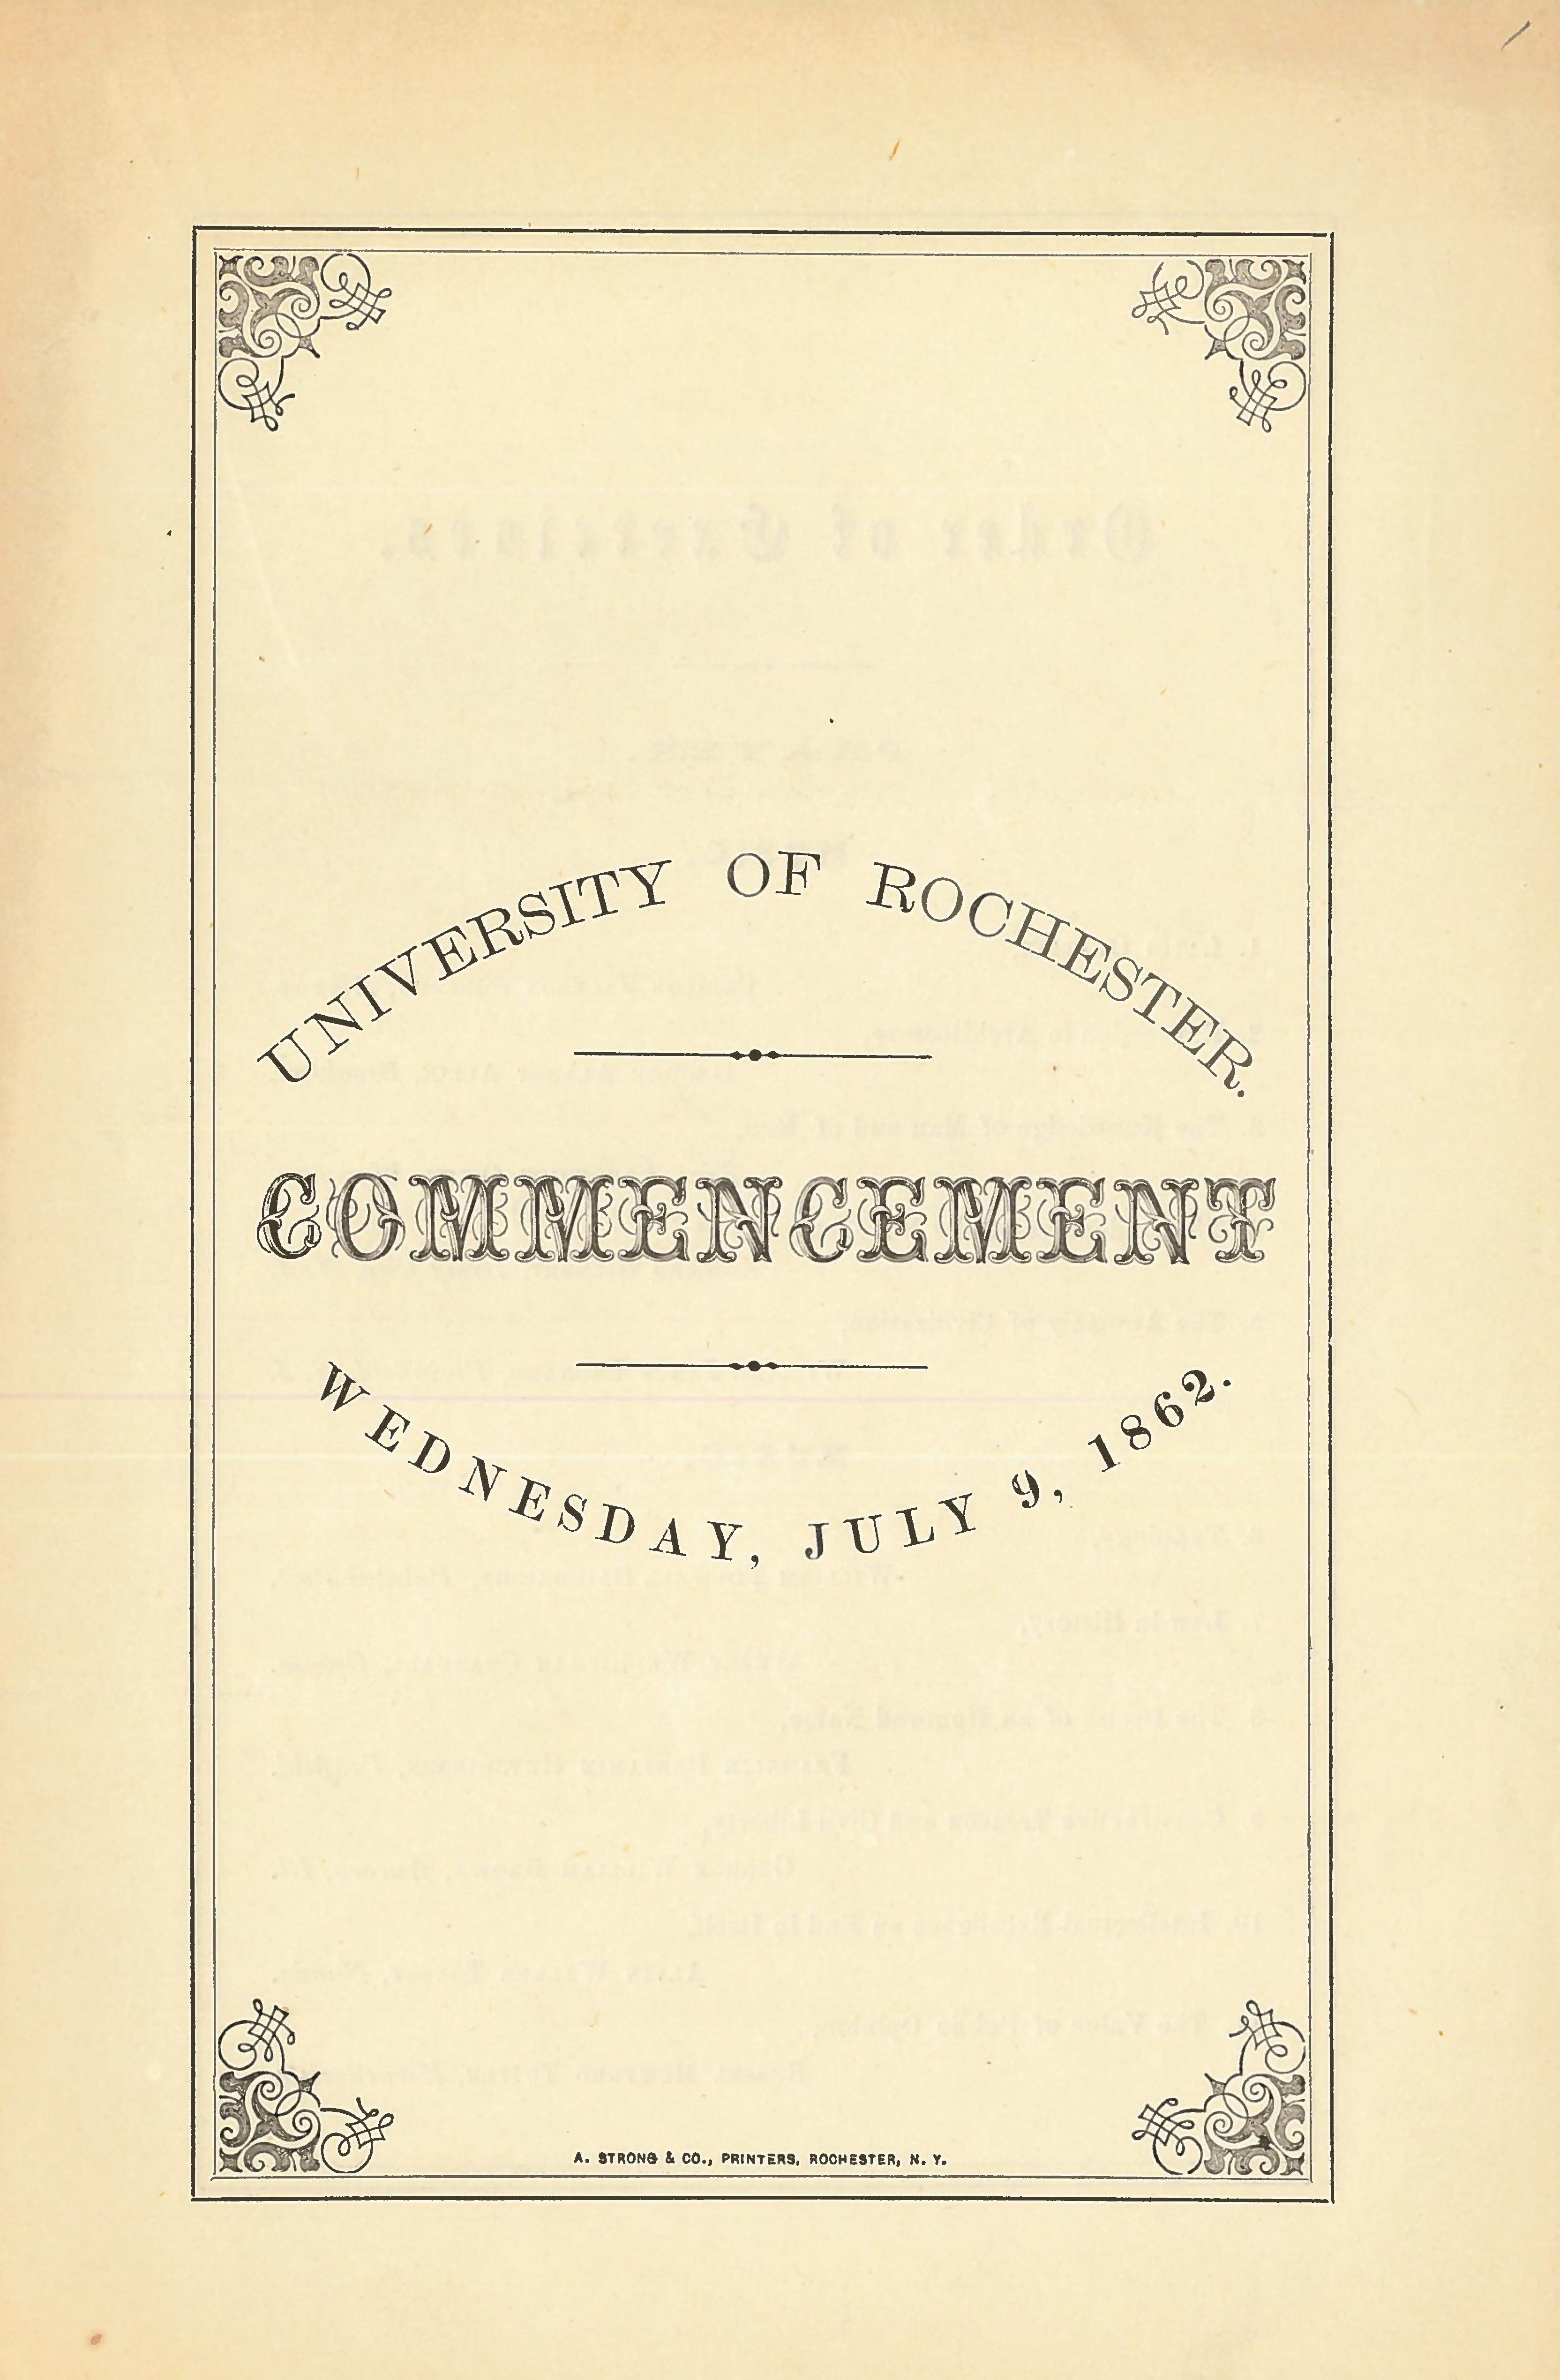 Commencement program (July 9, 1862)